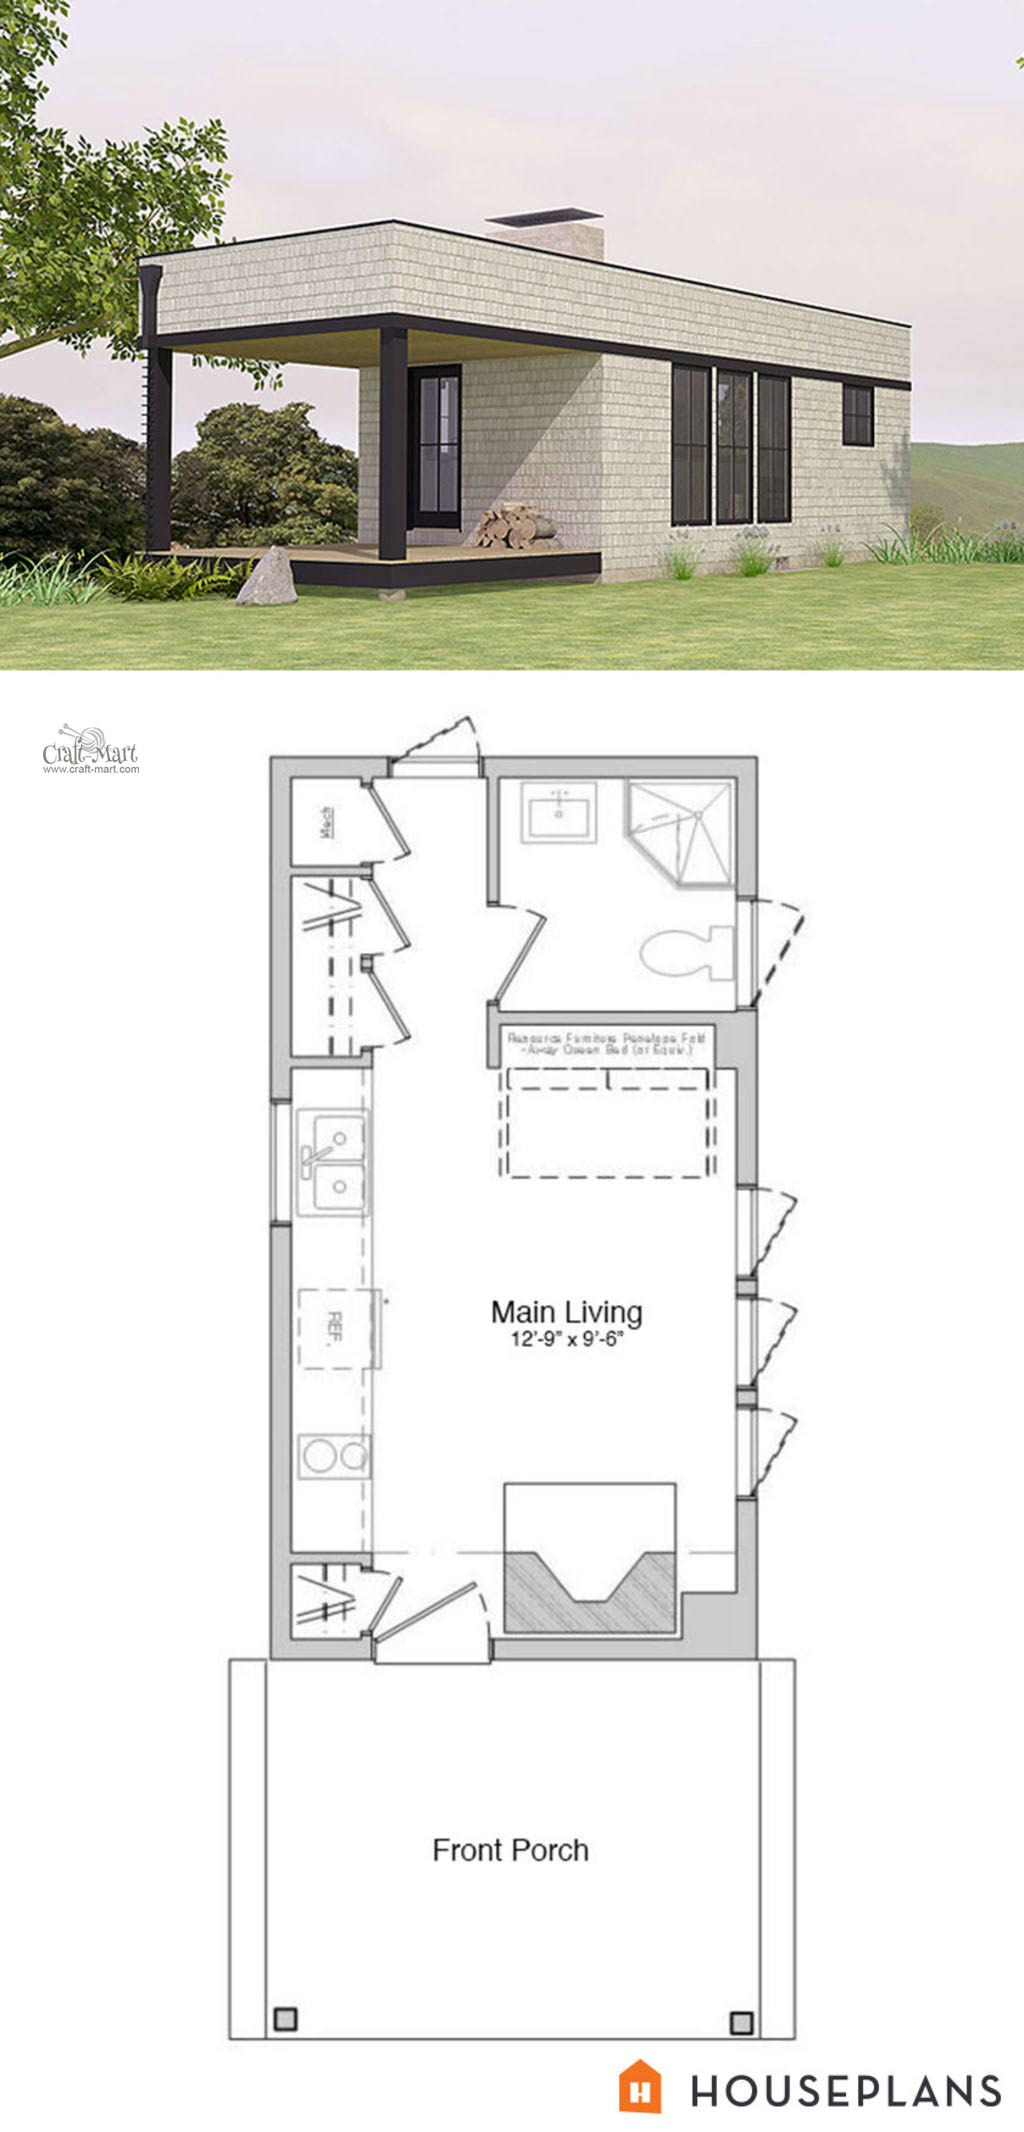 Free Plans for Houses New 27 Adorable Free Tiny House Floor Plans Craft Mart